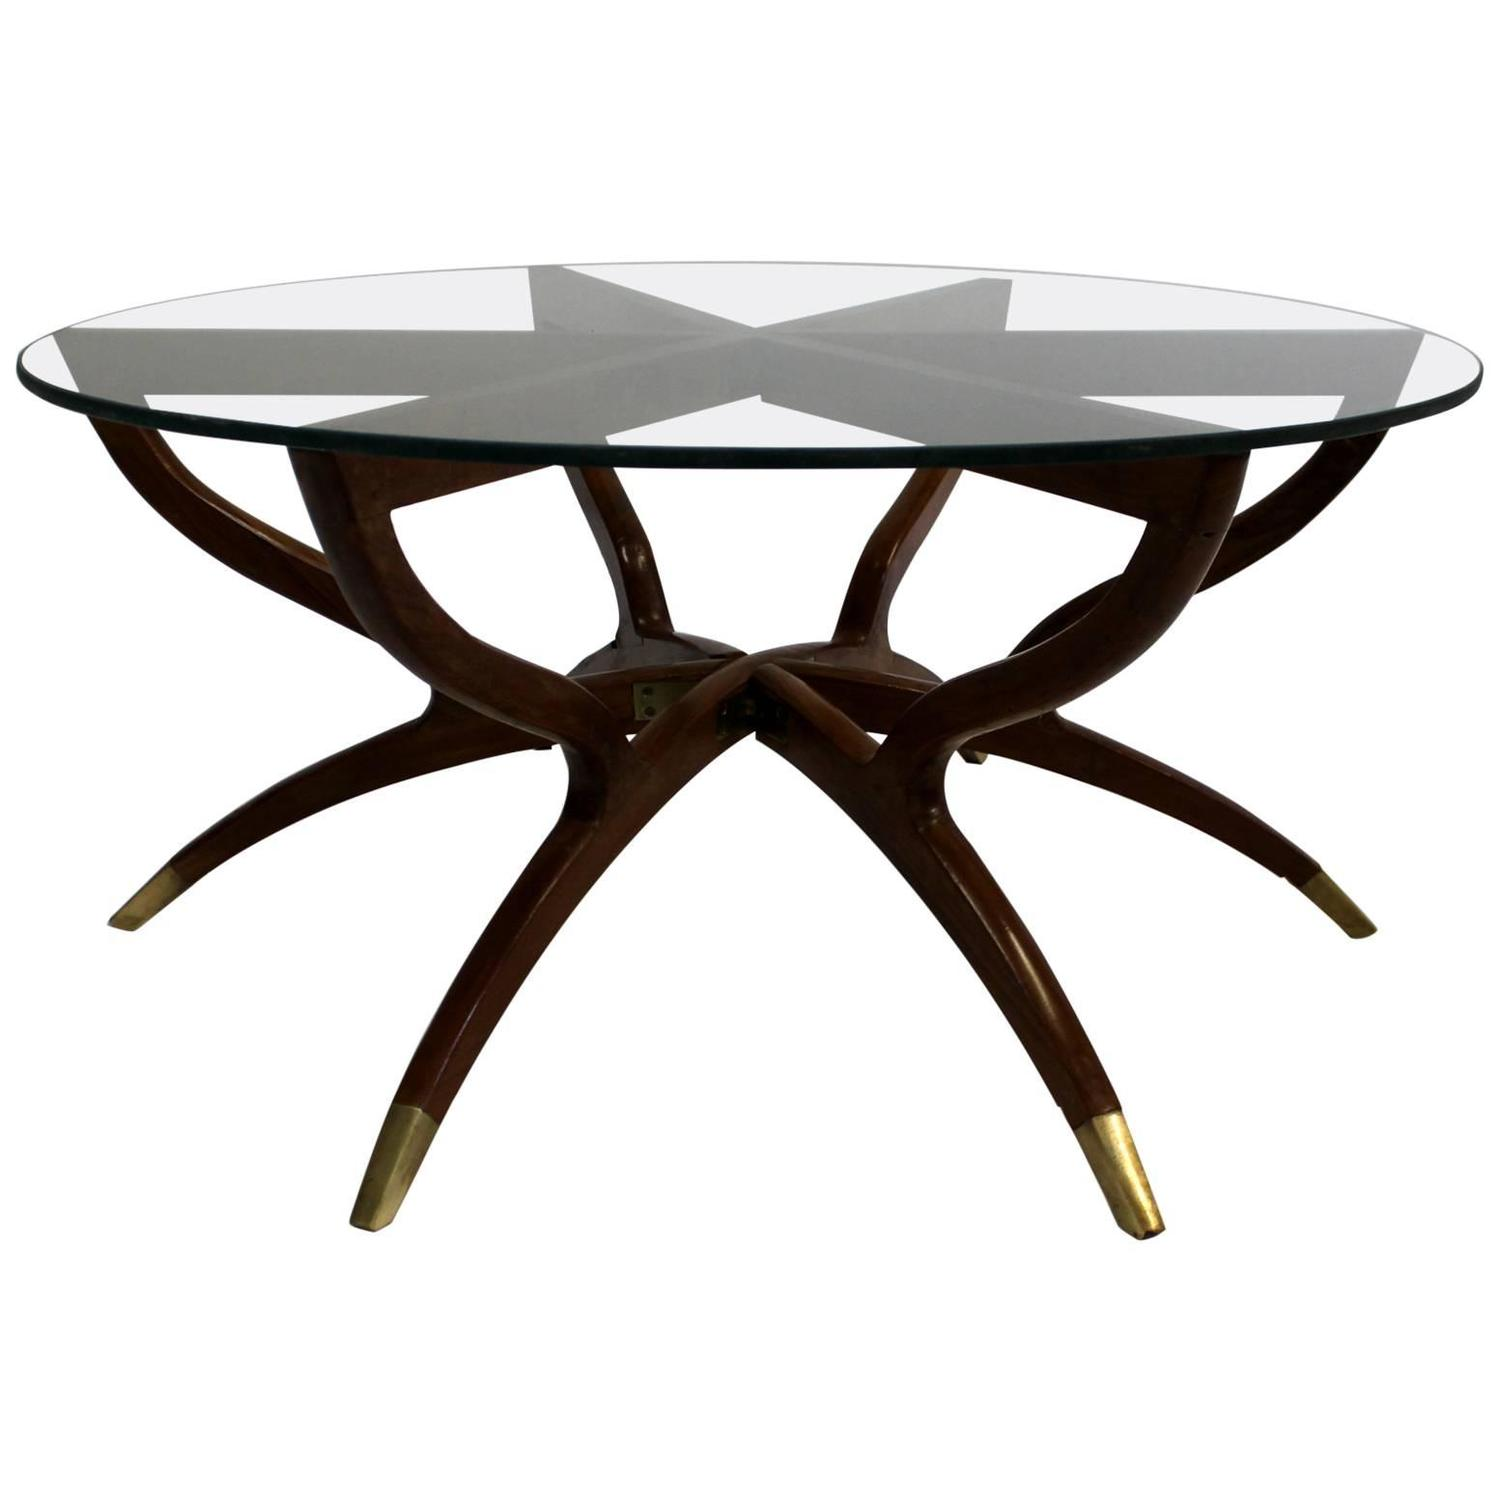 Kagan Style Mid Century Modern Collapsible Spider Leg Coffee Table